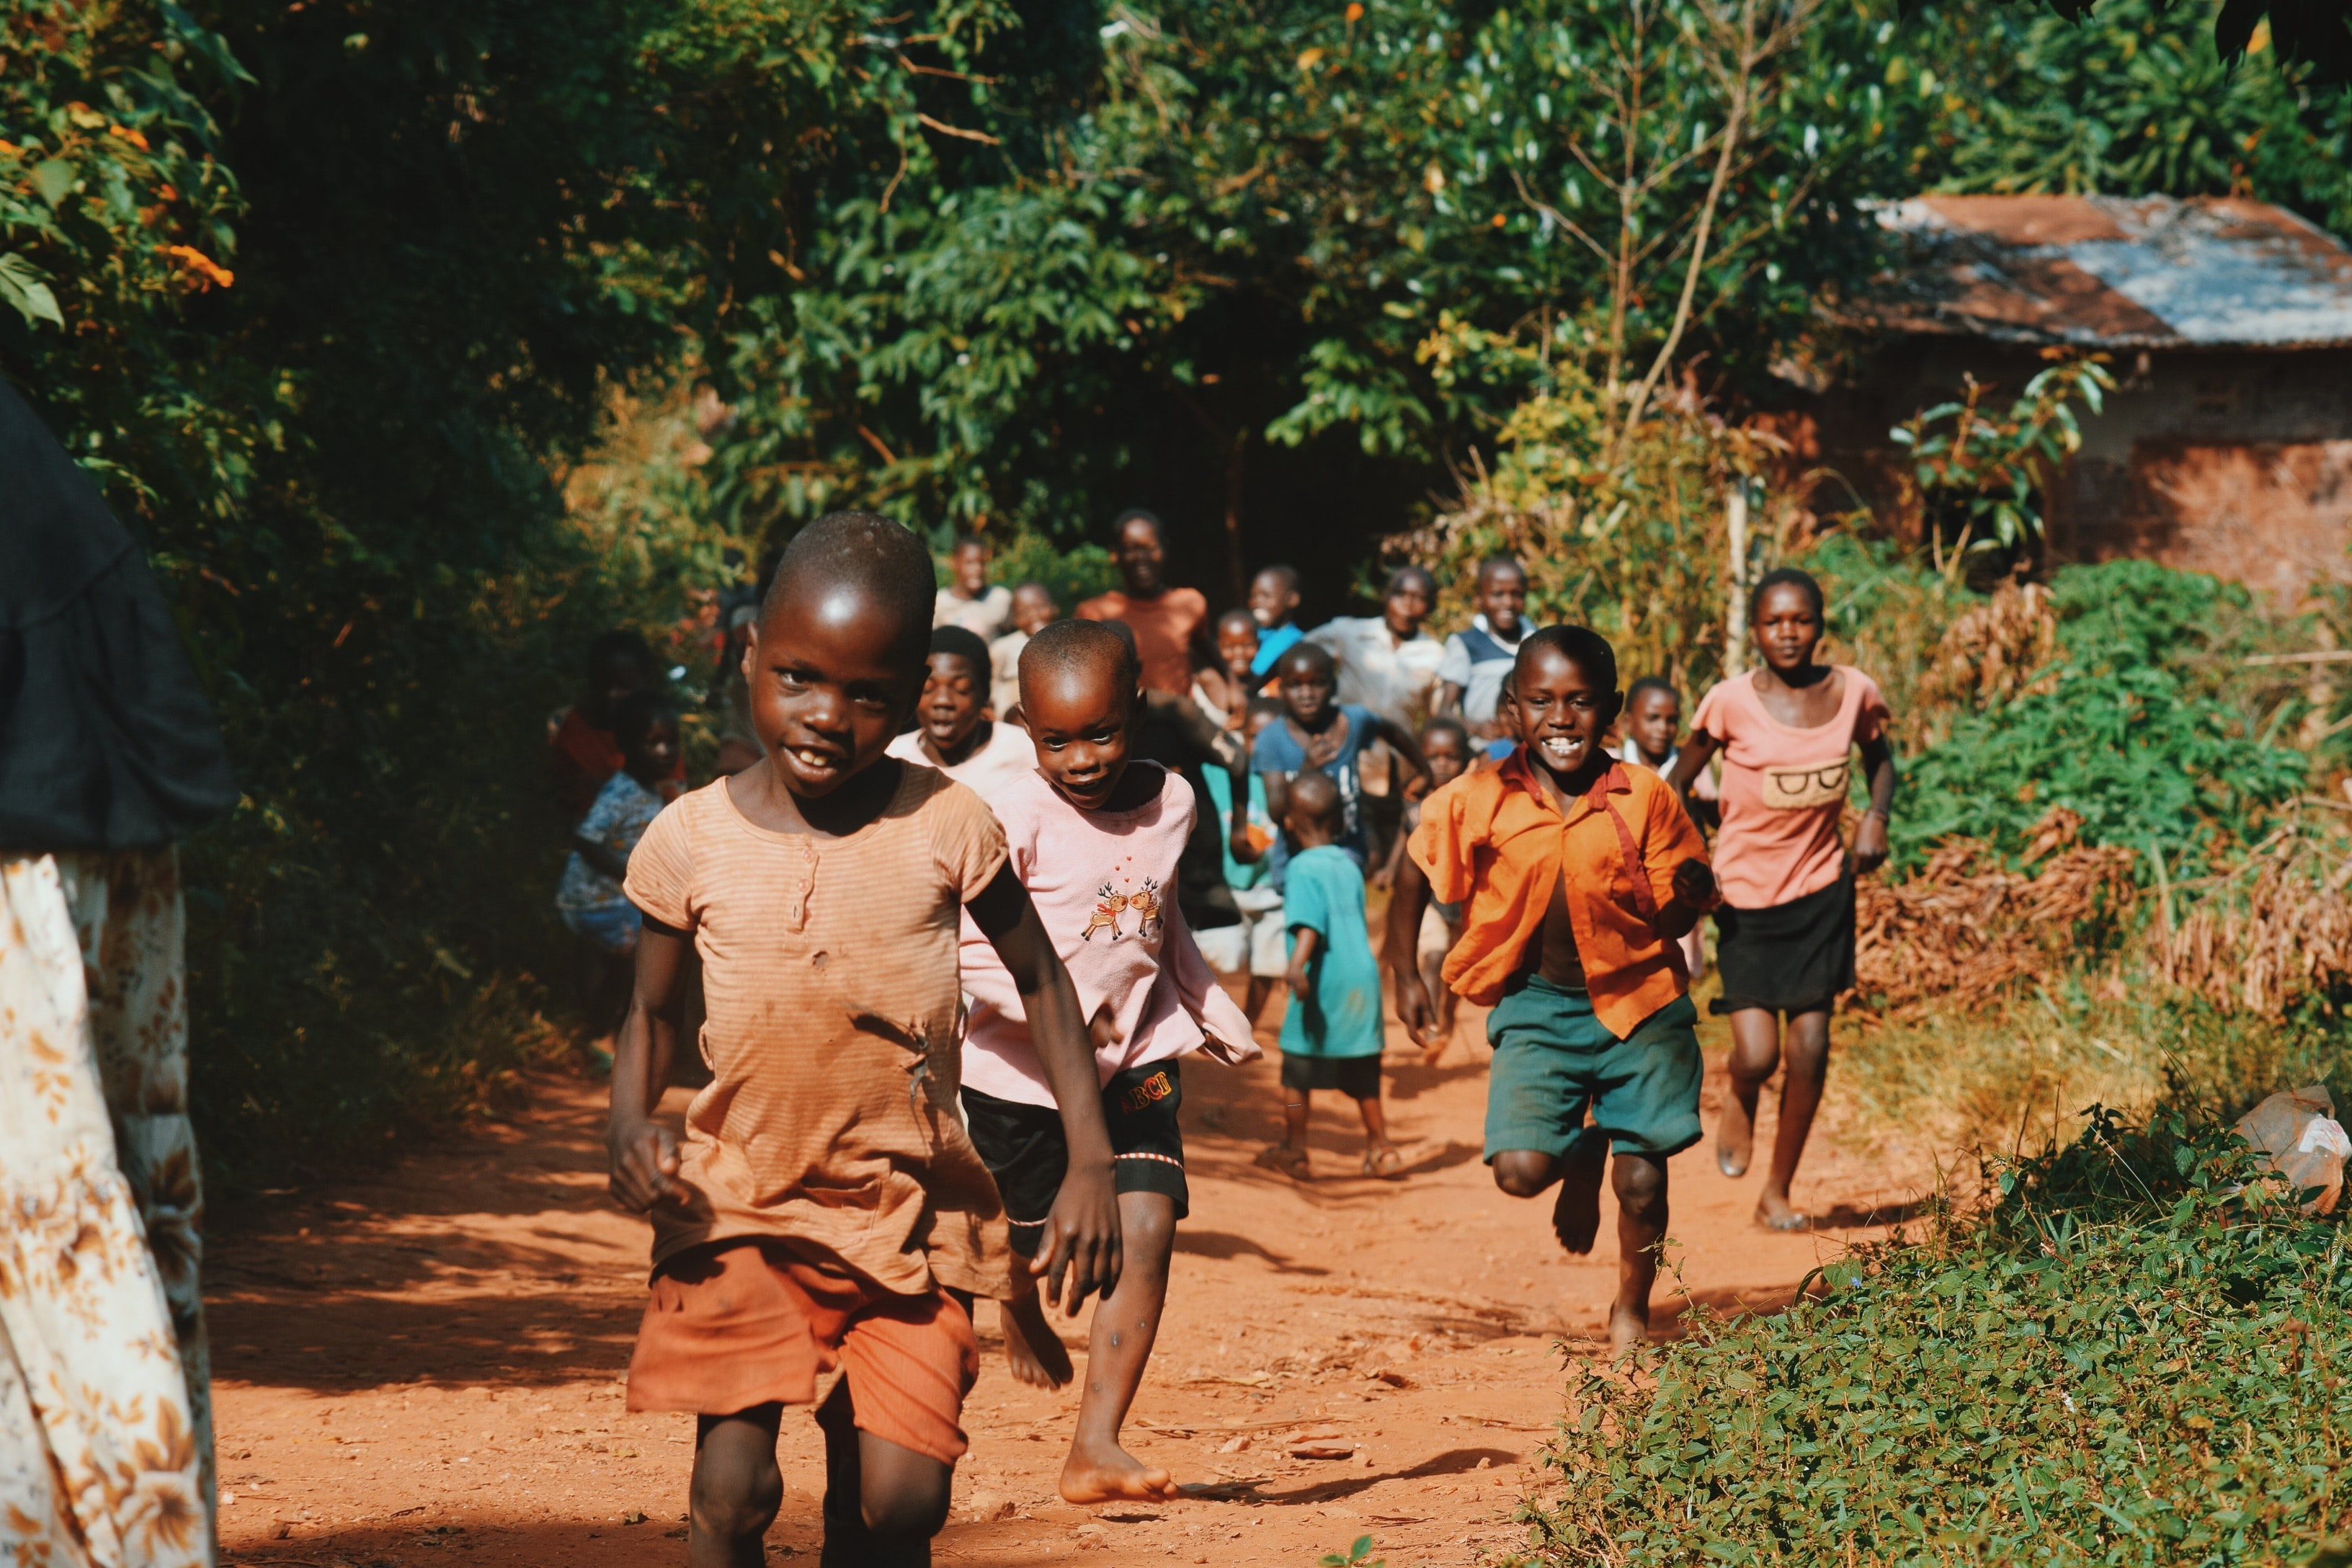 children running and walking on brown sand surrounded with trees during daytime